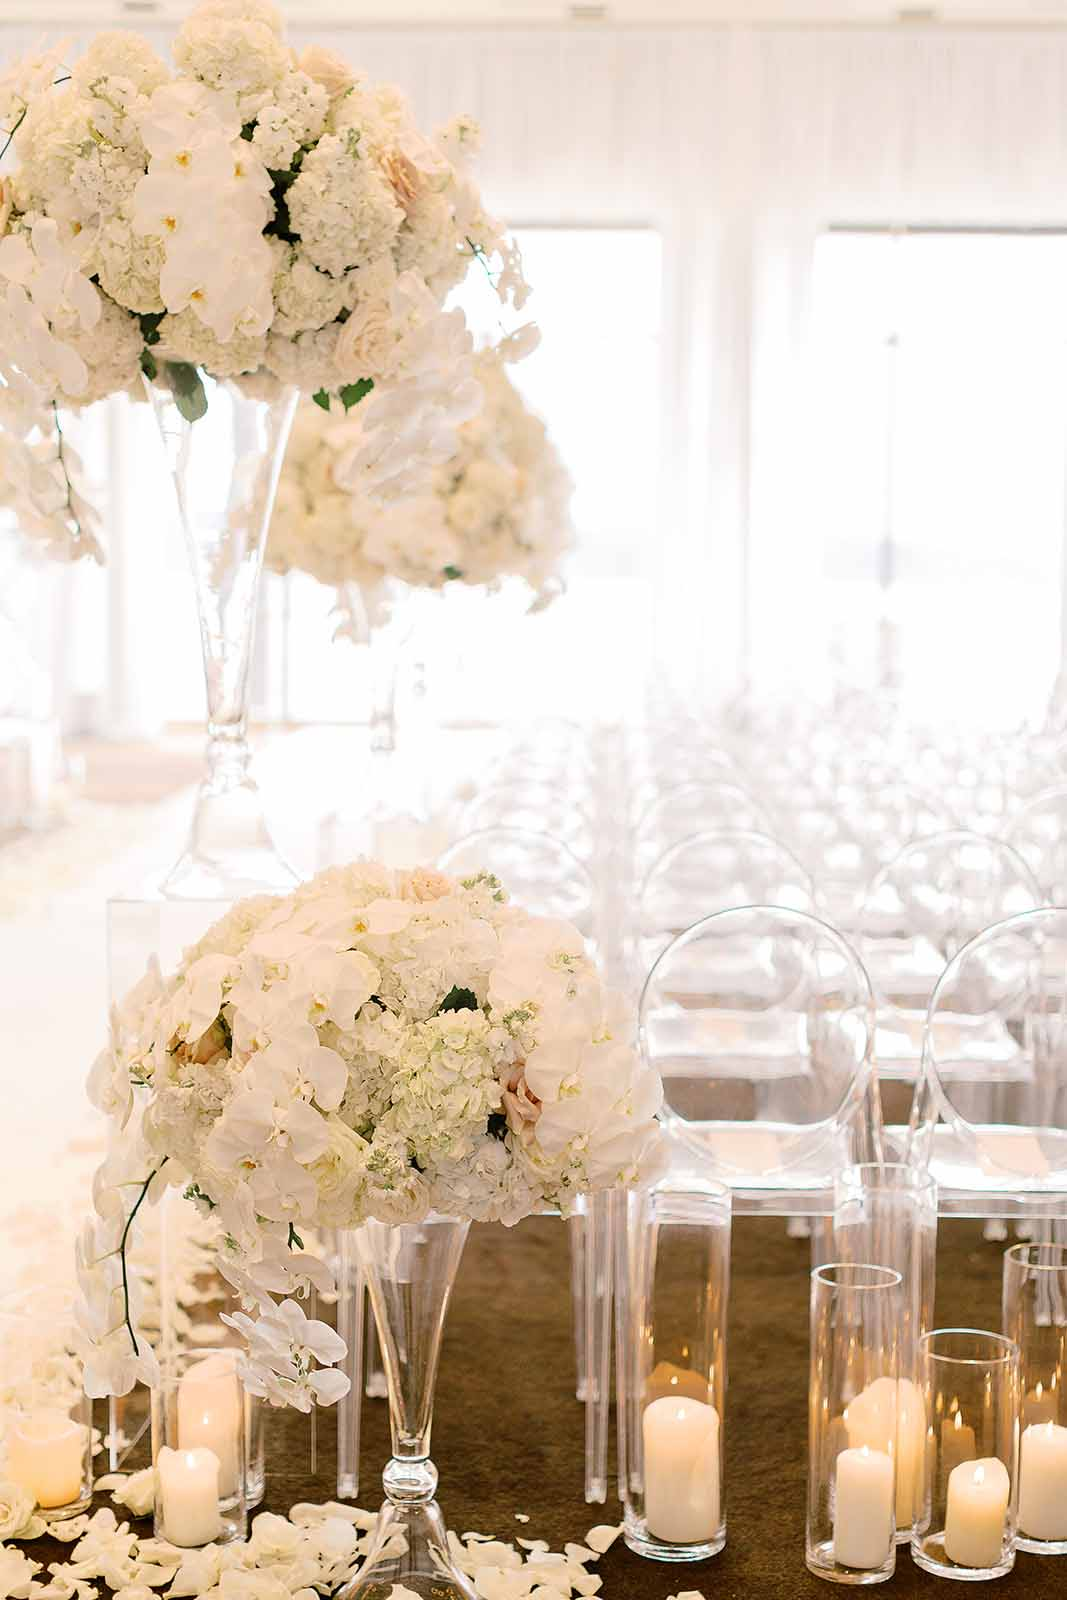 Aisle entrance to a formal Four Seasons wedding with tall white floral arrangements on crystal vases sit on a bed of rose petals and candles | Flora Nova Design Seattle